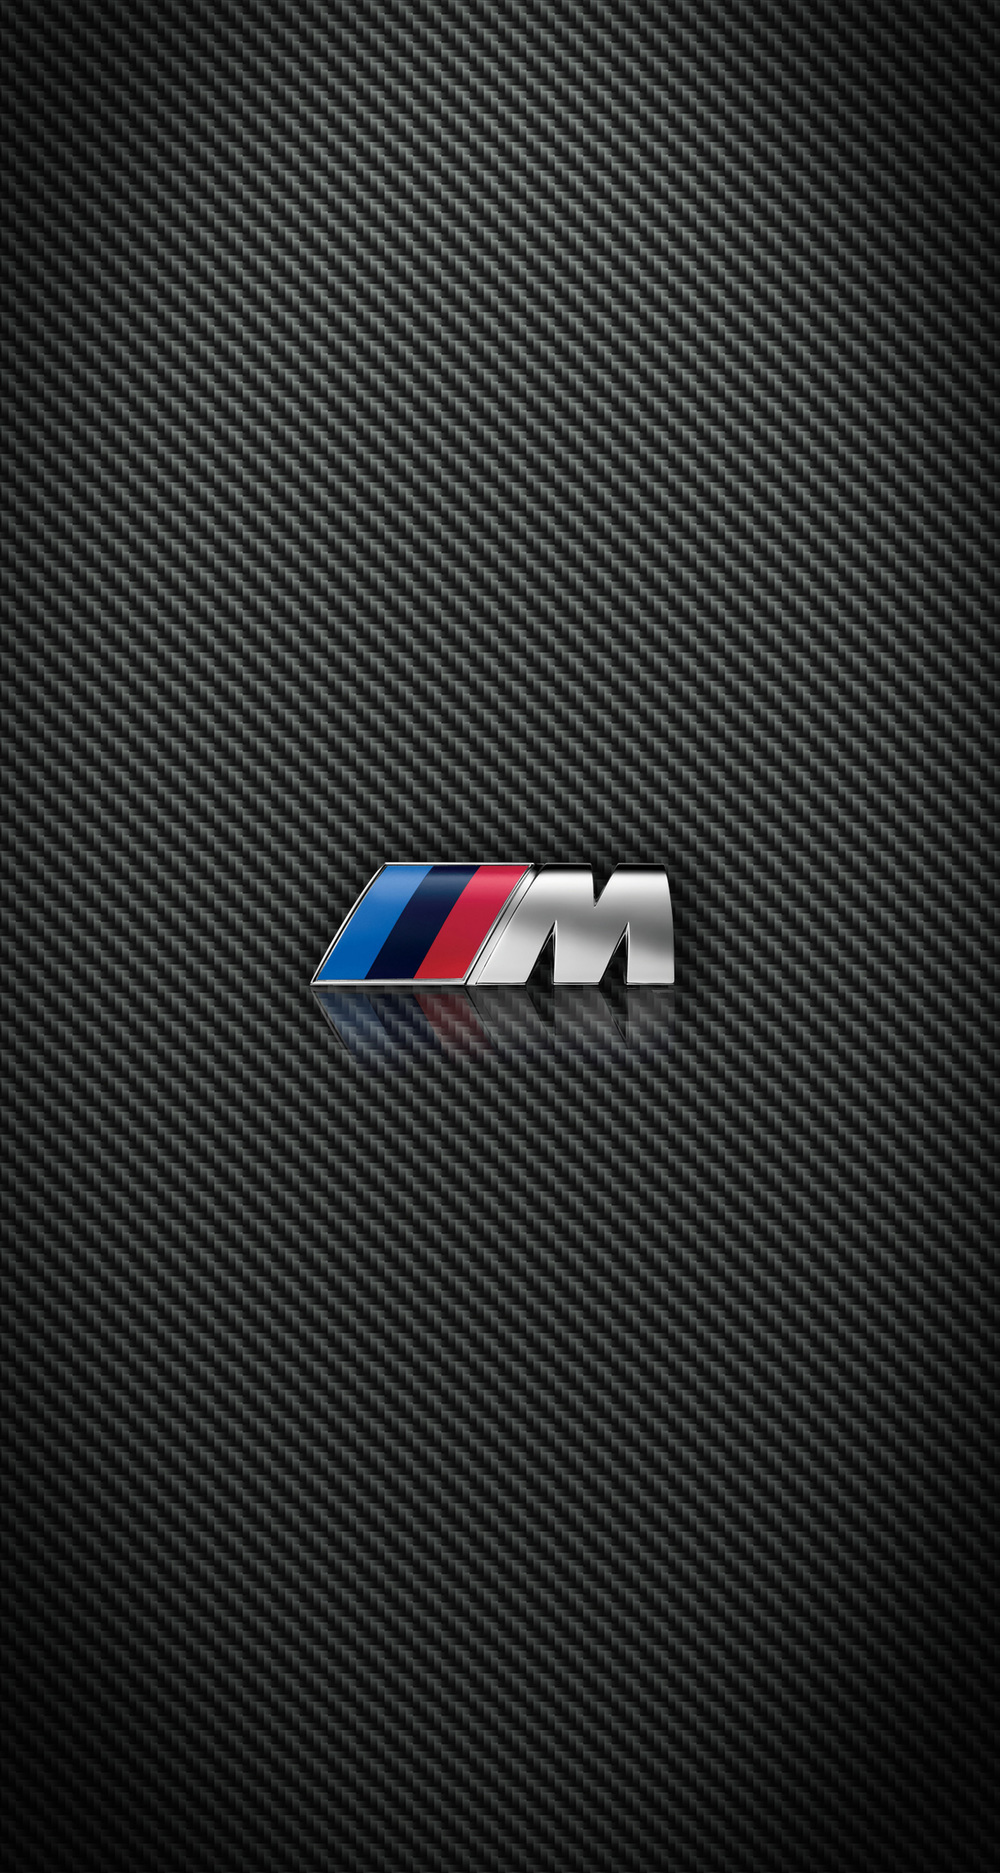 Carbon Fiber BMW and M Power iPhone wallpapers for iPhone 6 Plus 1000x1873